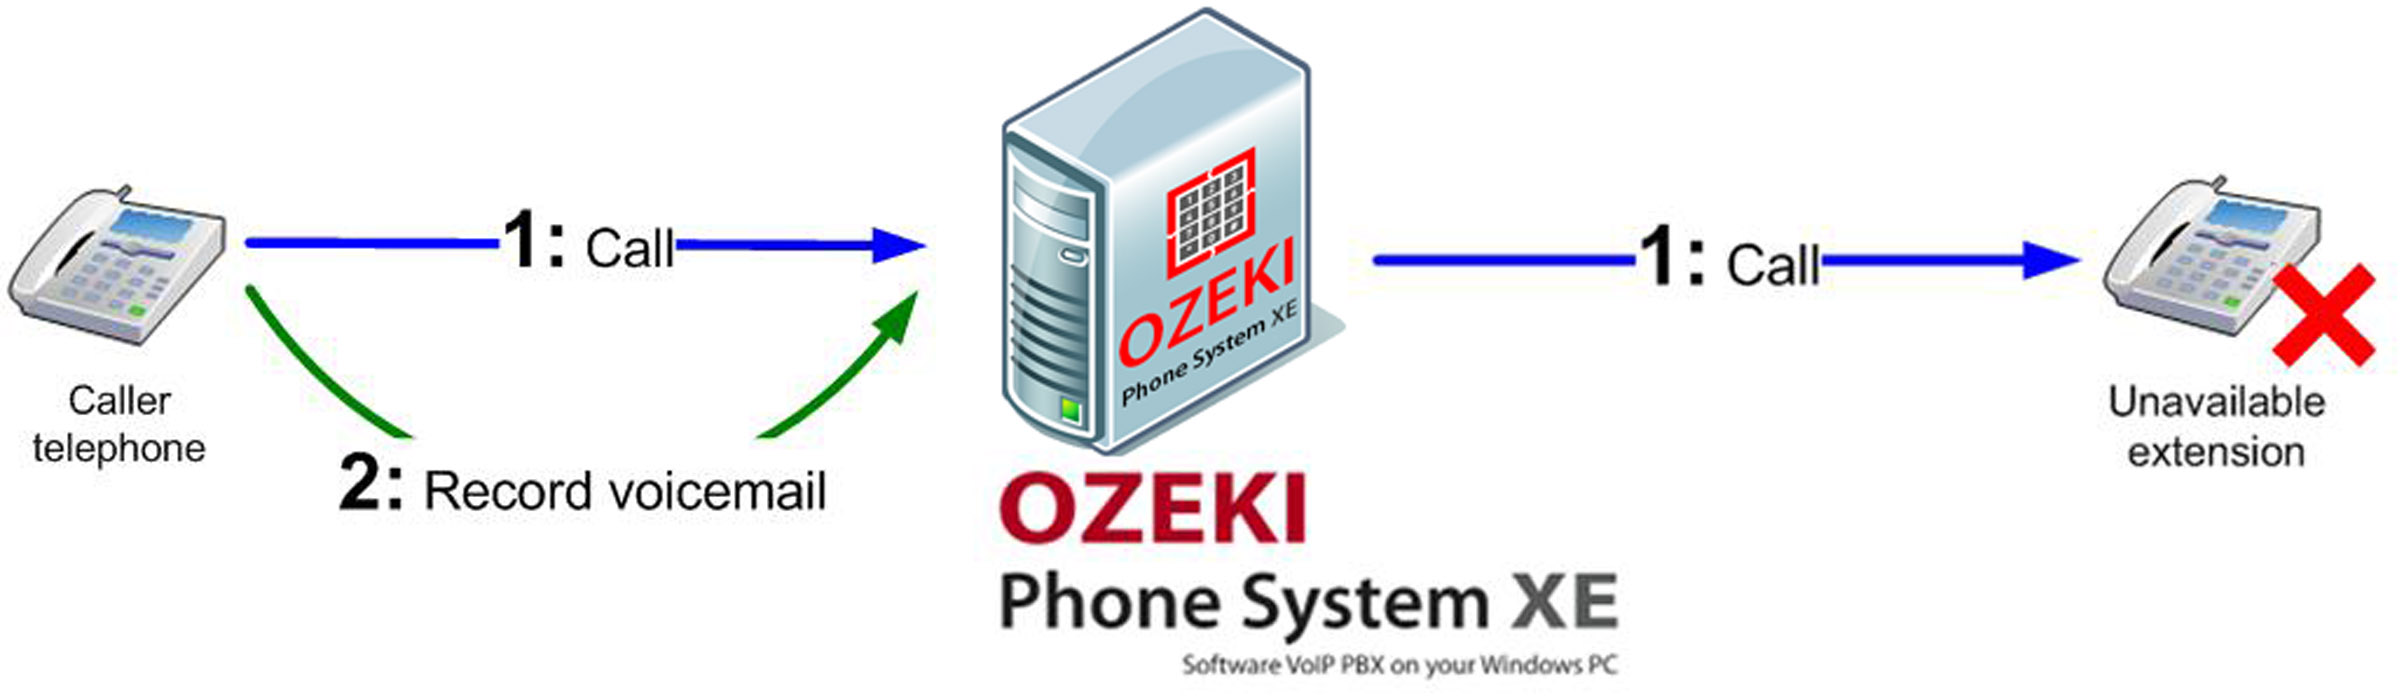 Ozeki voip pbx how to setup voicemail service in ozeki phone ozeki voip pbx how to setup voicemail service in ozeki phone system xe pbx kristyandbryce Image collections